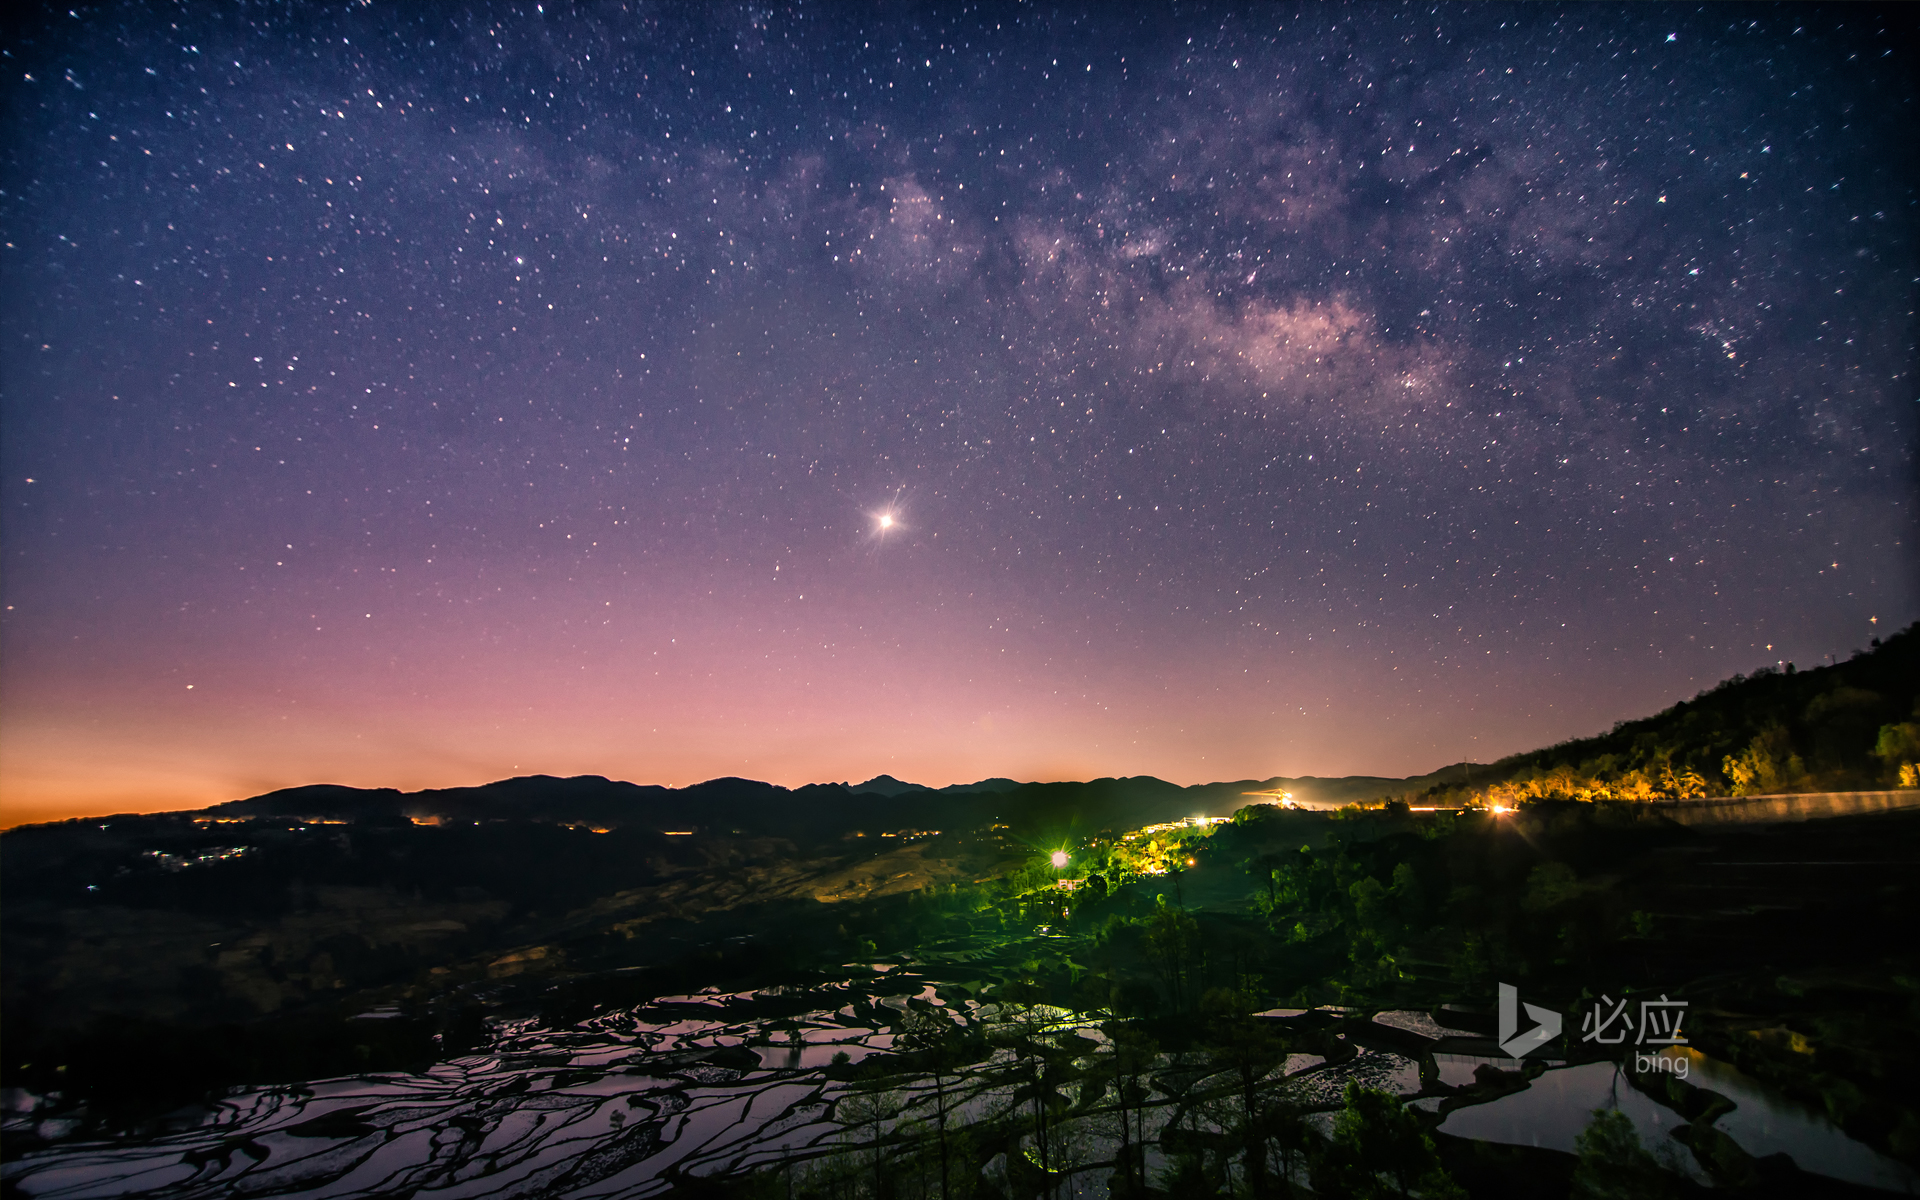 The Milky Way in Yuanyang County